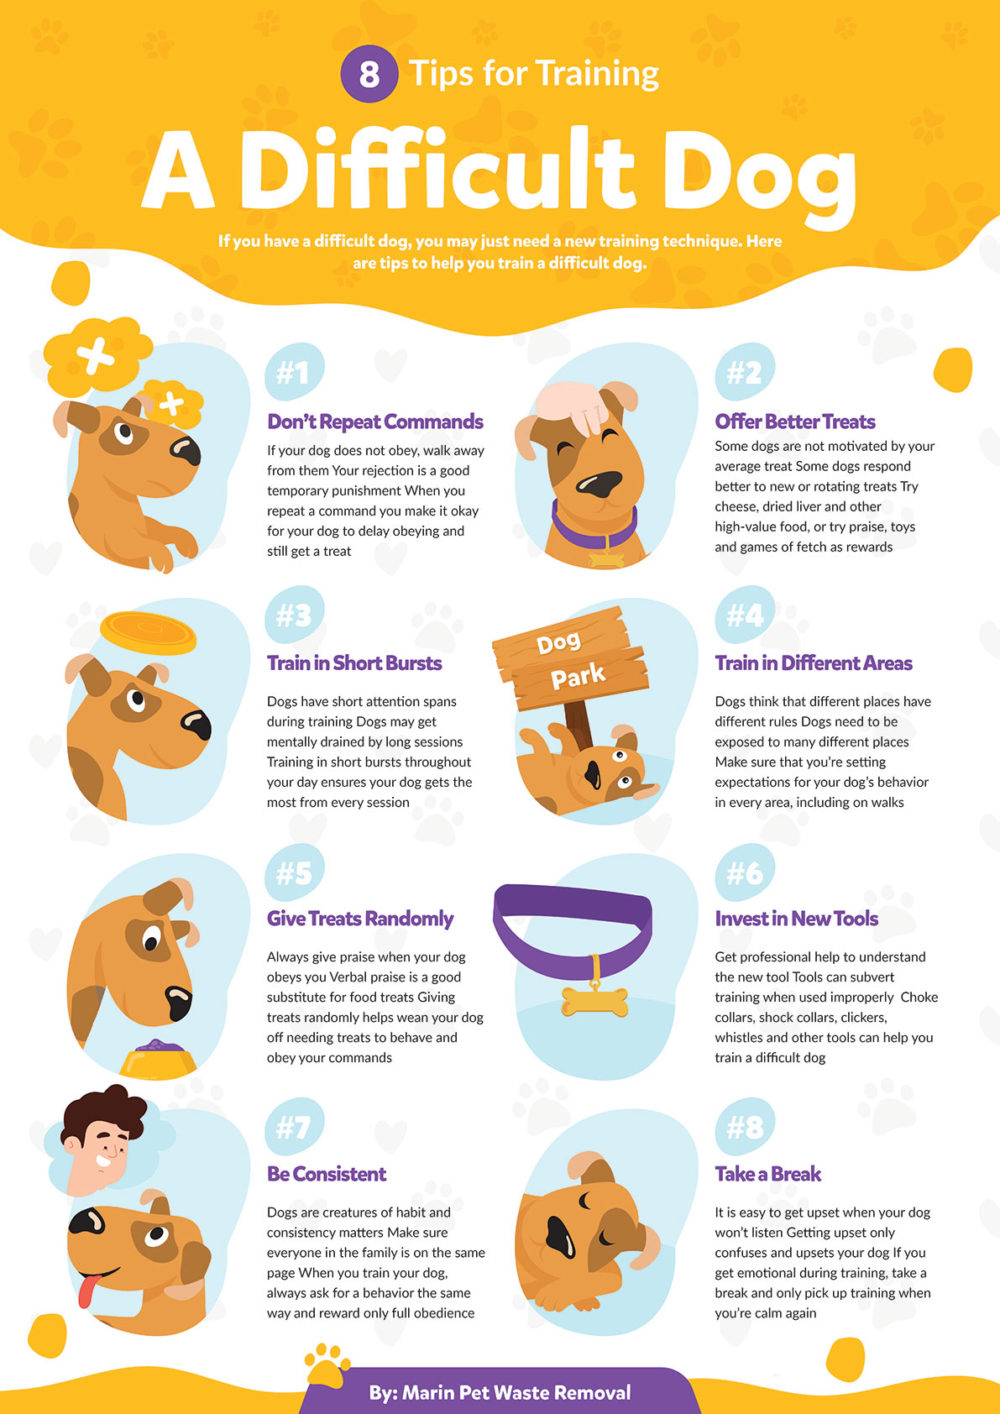 8 Tips for Training a Difficult Dog